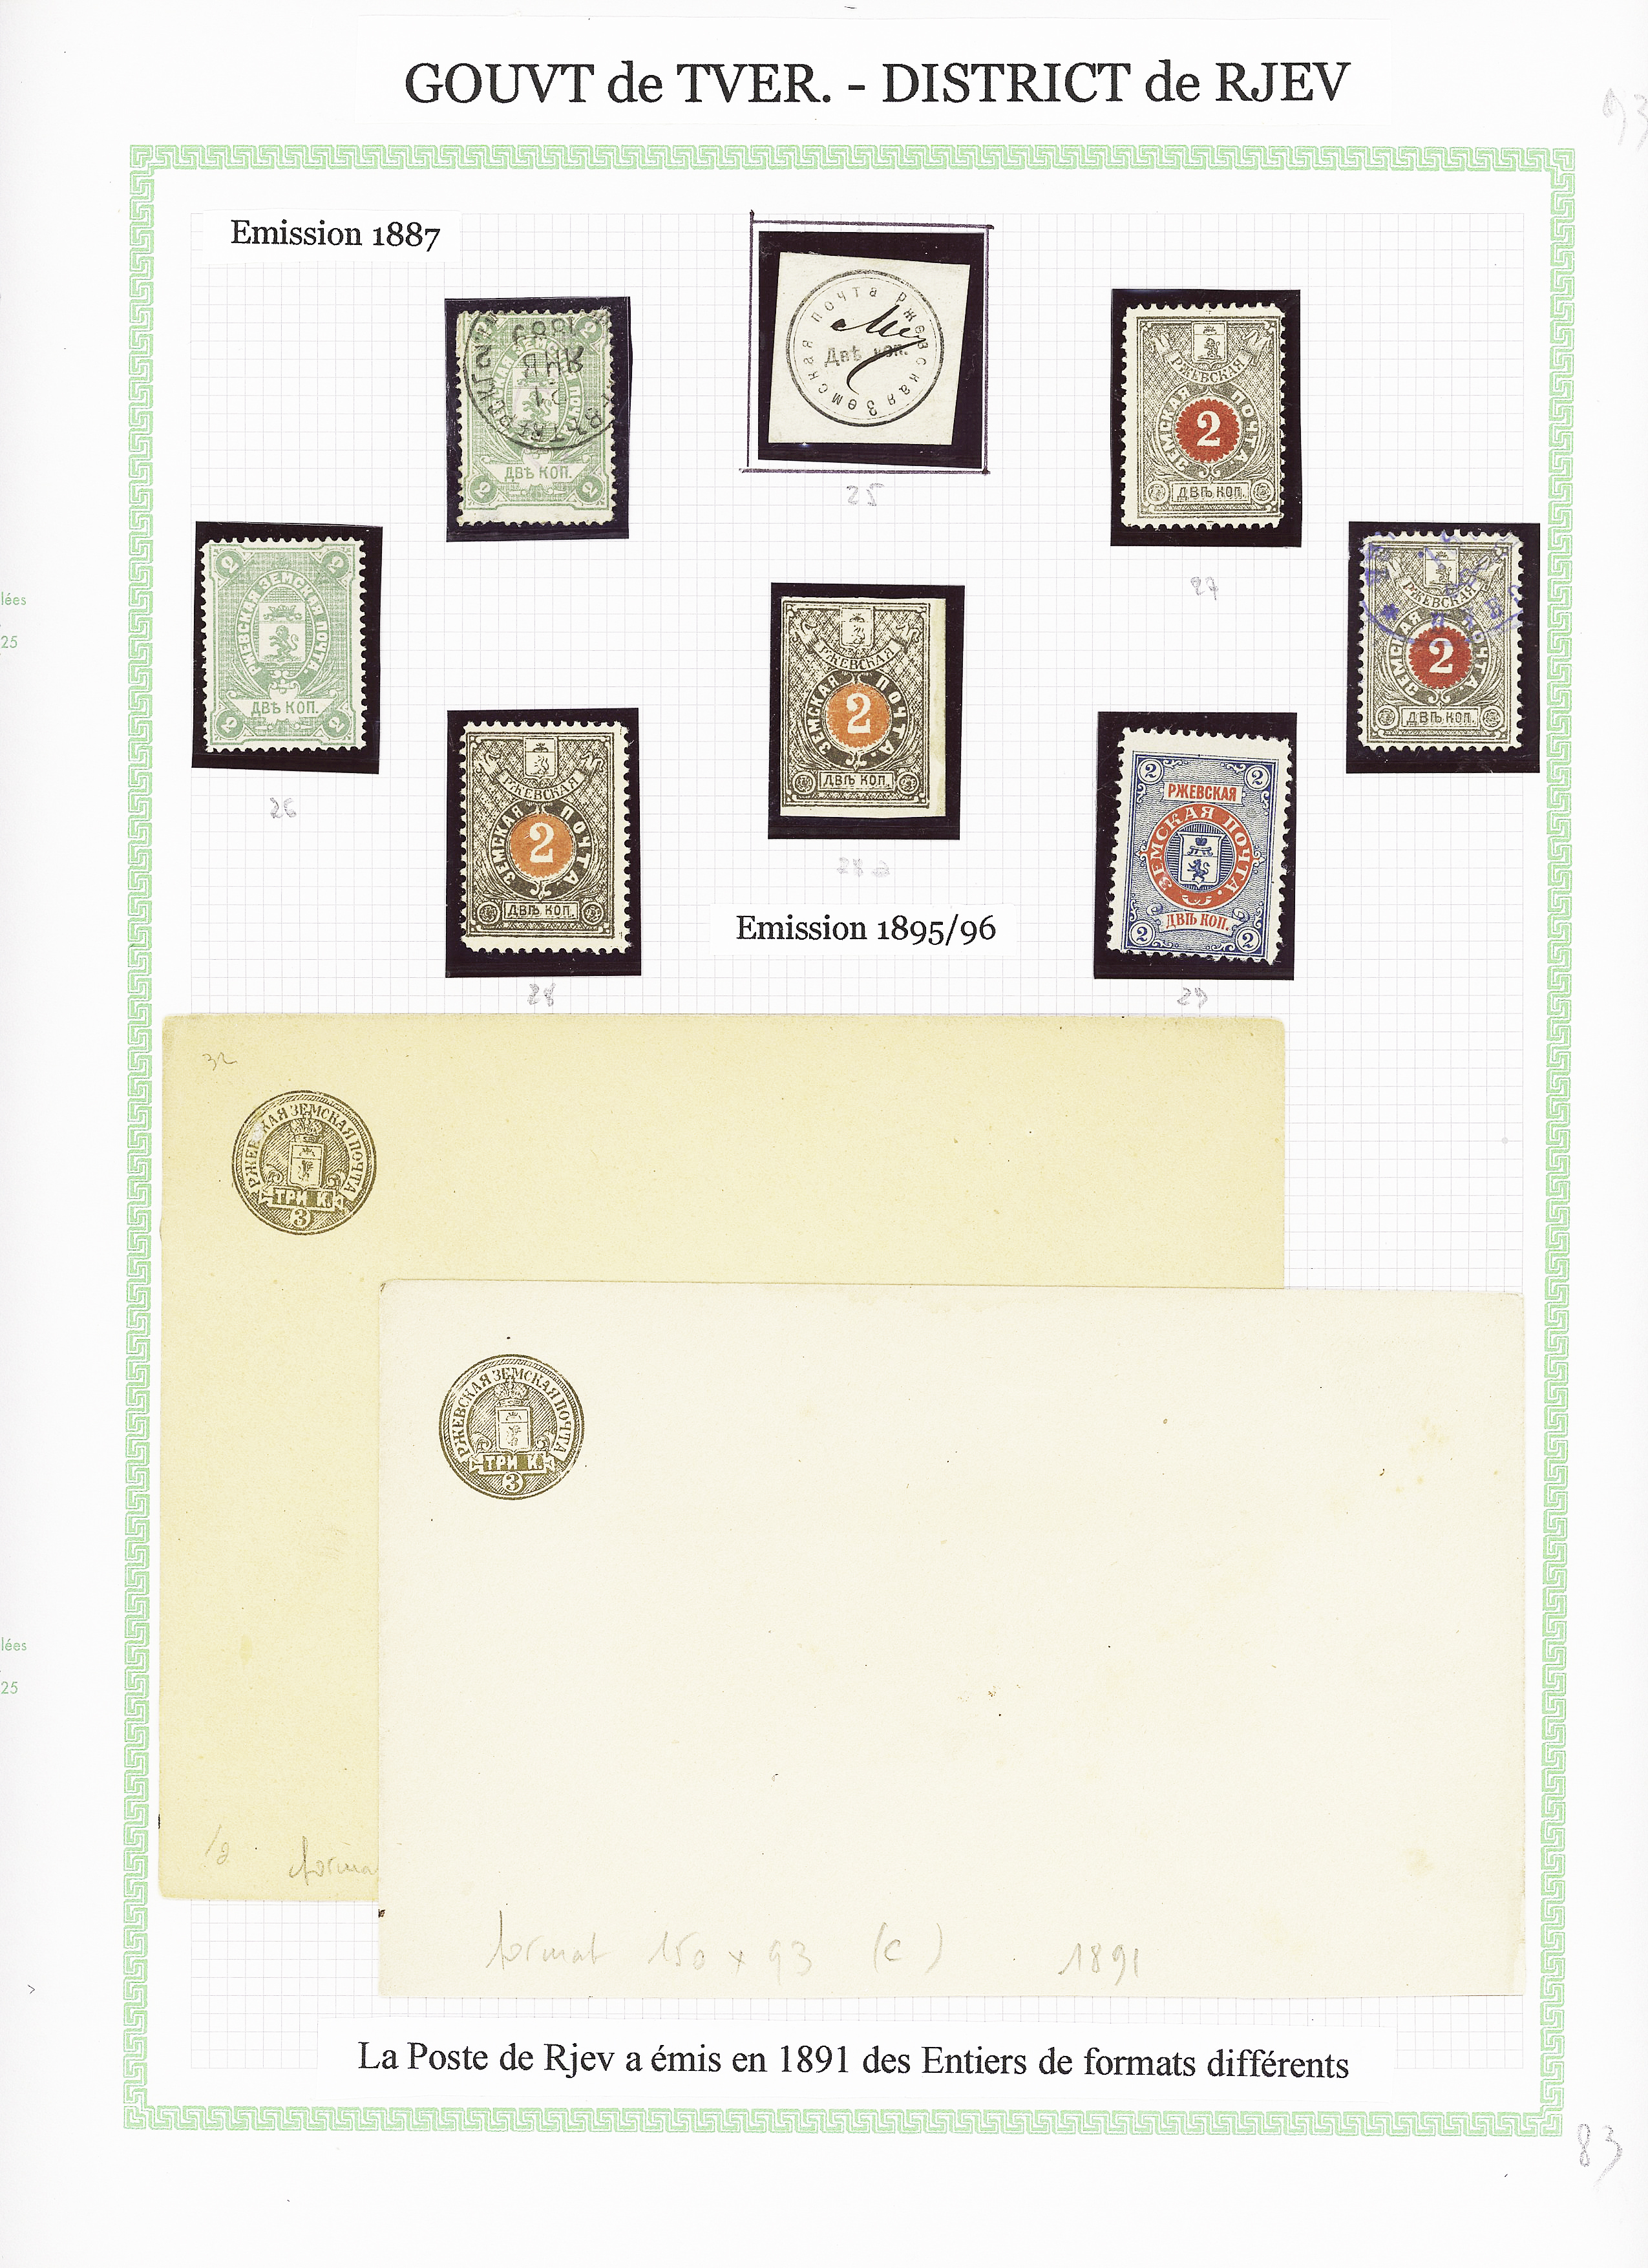 Lot 544 - Eastern Europe » RUSSIA - ZEMSTVOS » Rzhev (Tver Government)  -  Le Timbre Classique SA SALE ON OFFERS N ° 37 PARIS